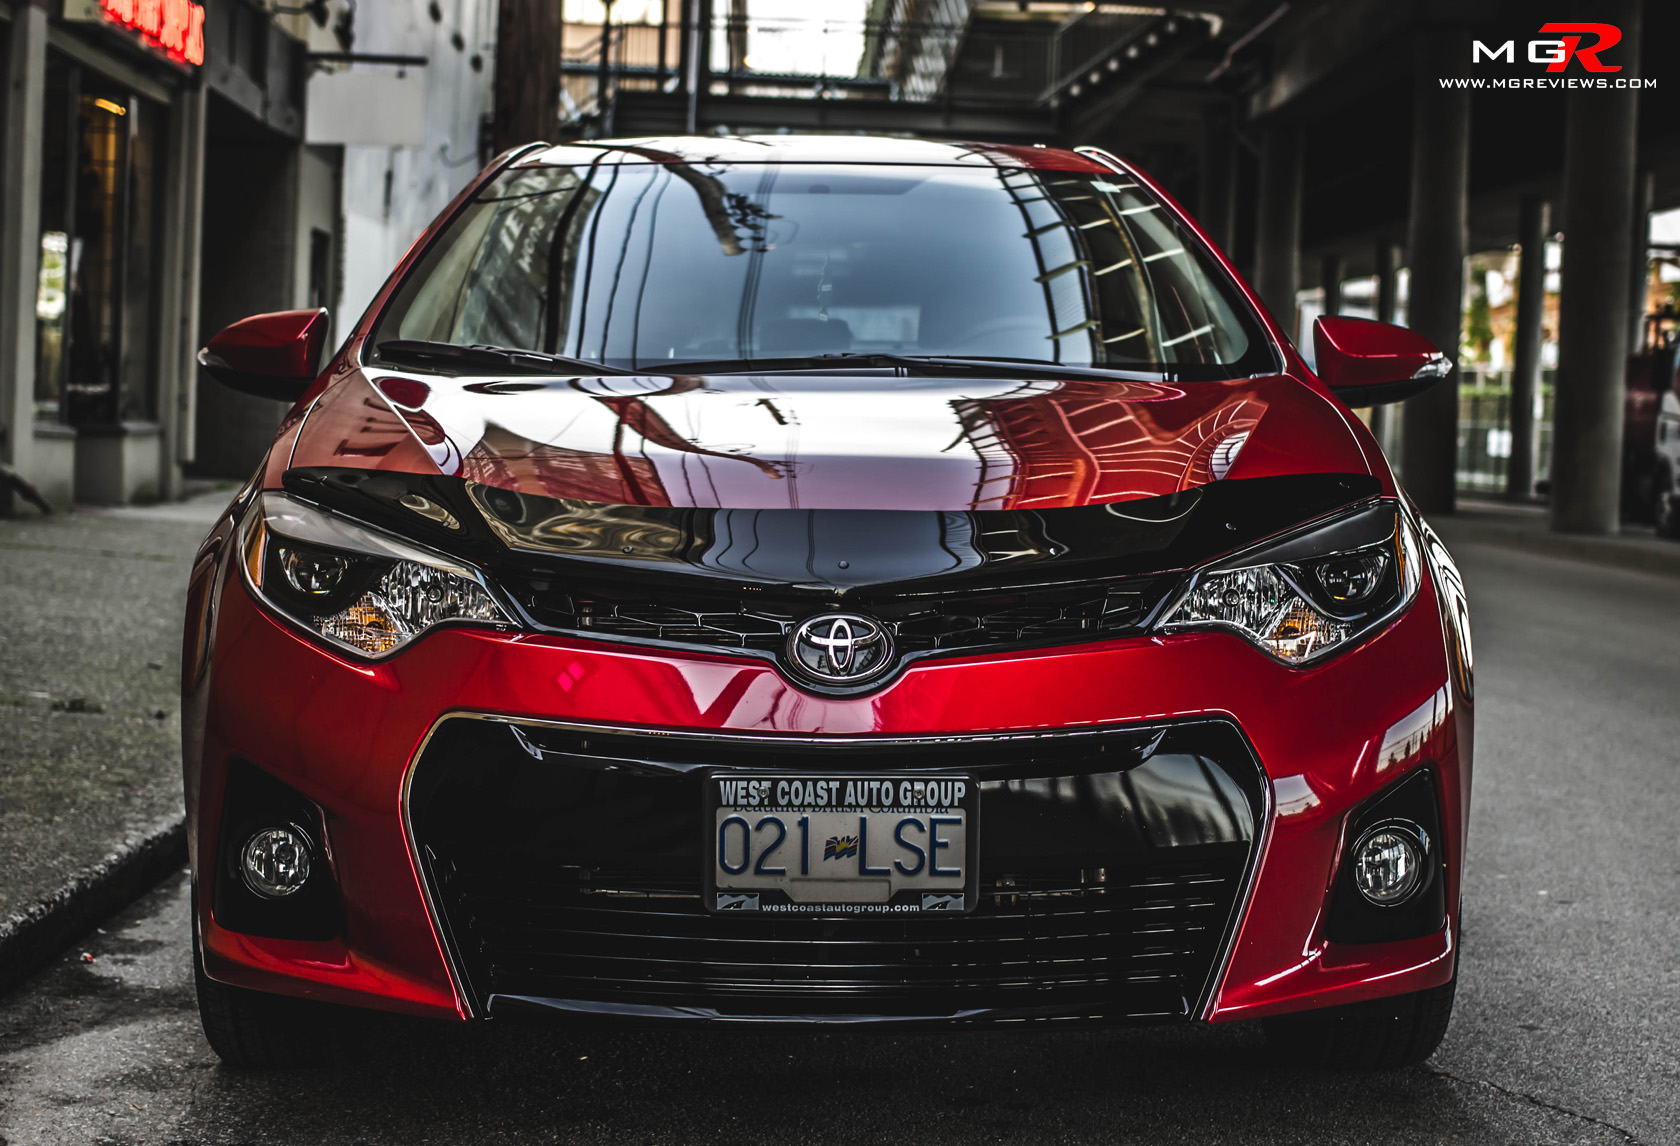 With Over 40 Million Corollas Sold Since Its Introduction In 1966, Toyota  Has Taken A Bold Step In Redesigning And Improving The Now 11th Generation  Of The ...